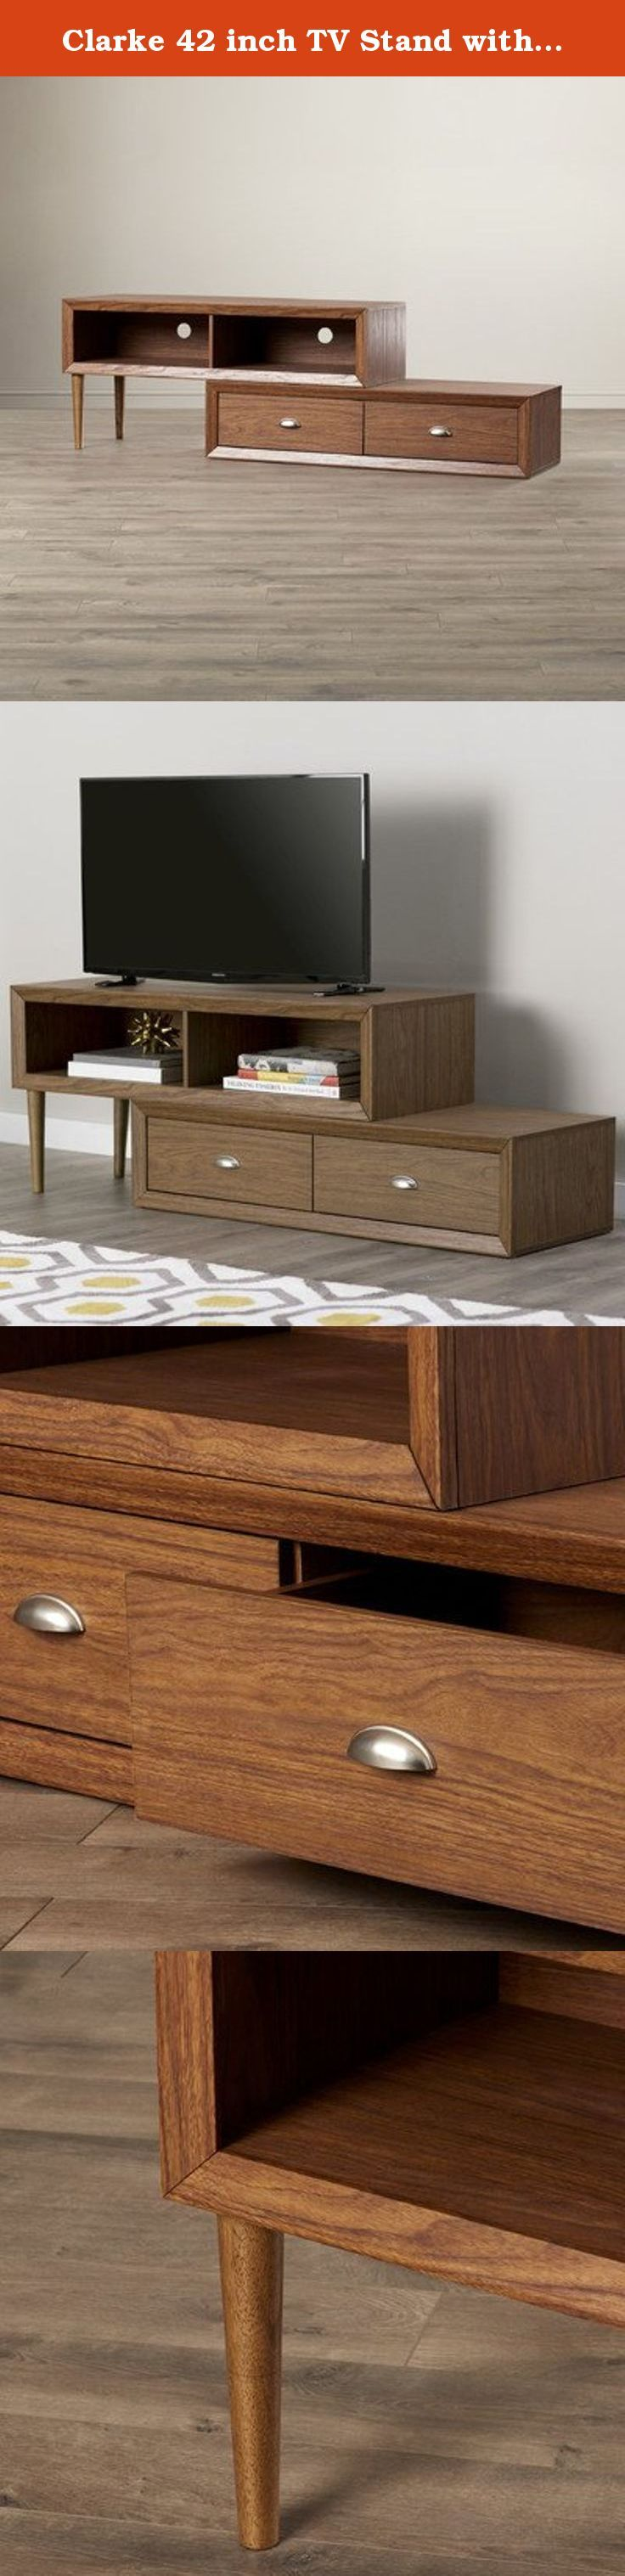 Clarke 42 inch TV Stand with 2 Drawer and Shelves-Walnut. A striking asymmetrical statement, the Clarke TV Stand embodies geometric mid-century intrigue with an offset stack of two drawers and two open shelves. Pre-drilled holes make media management a breeze.